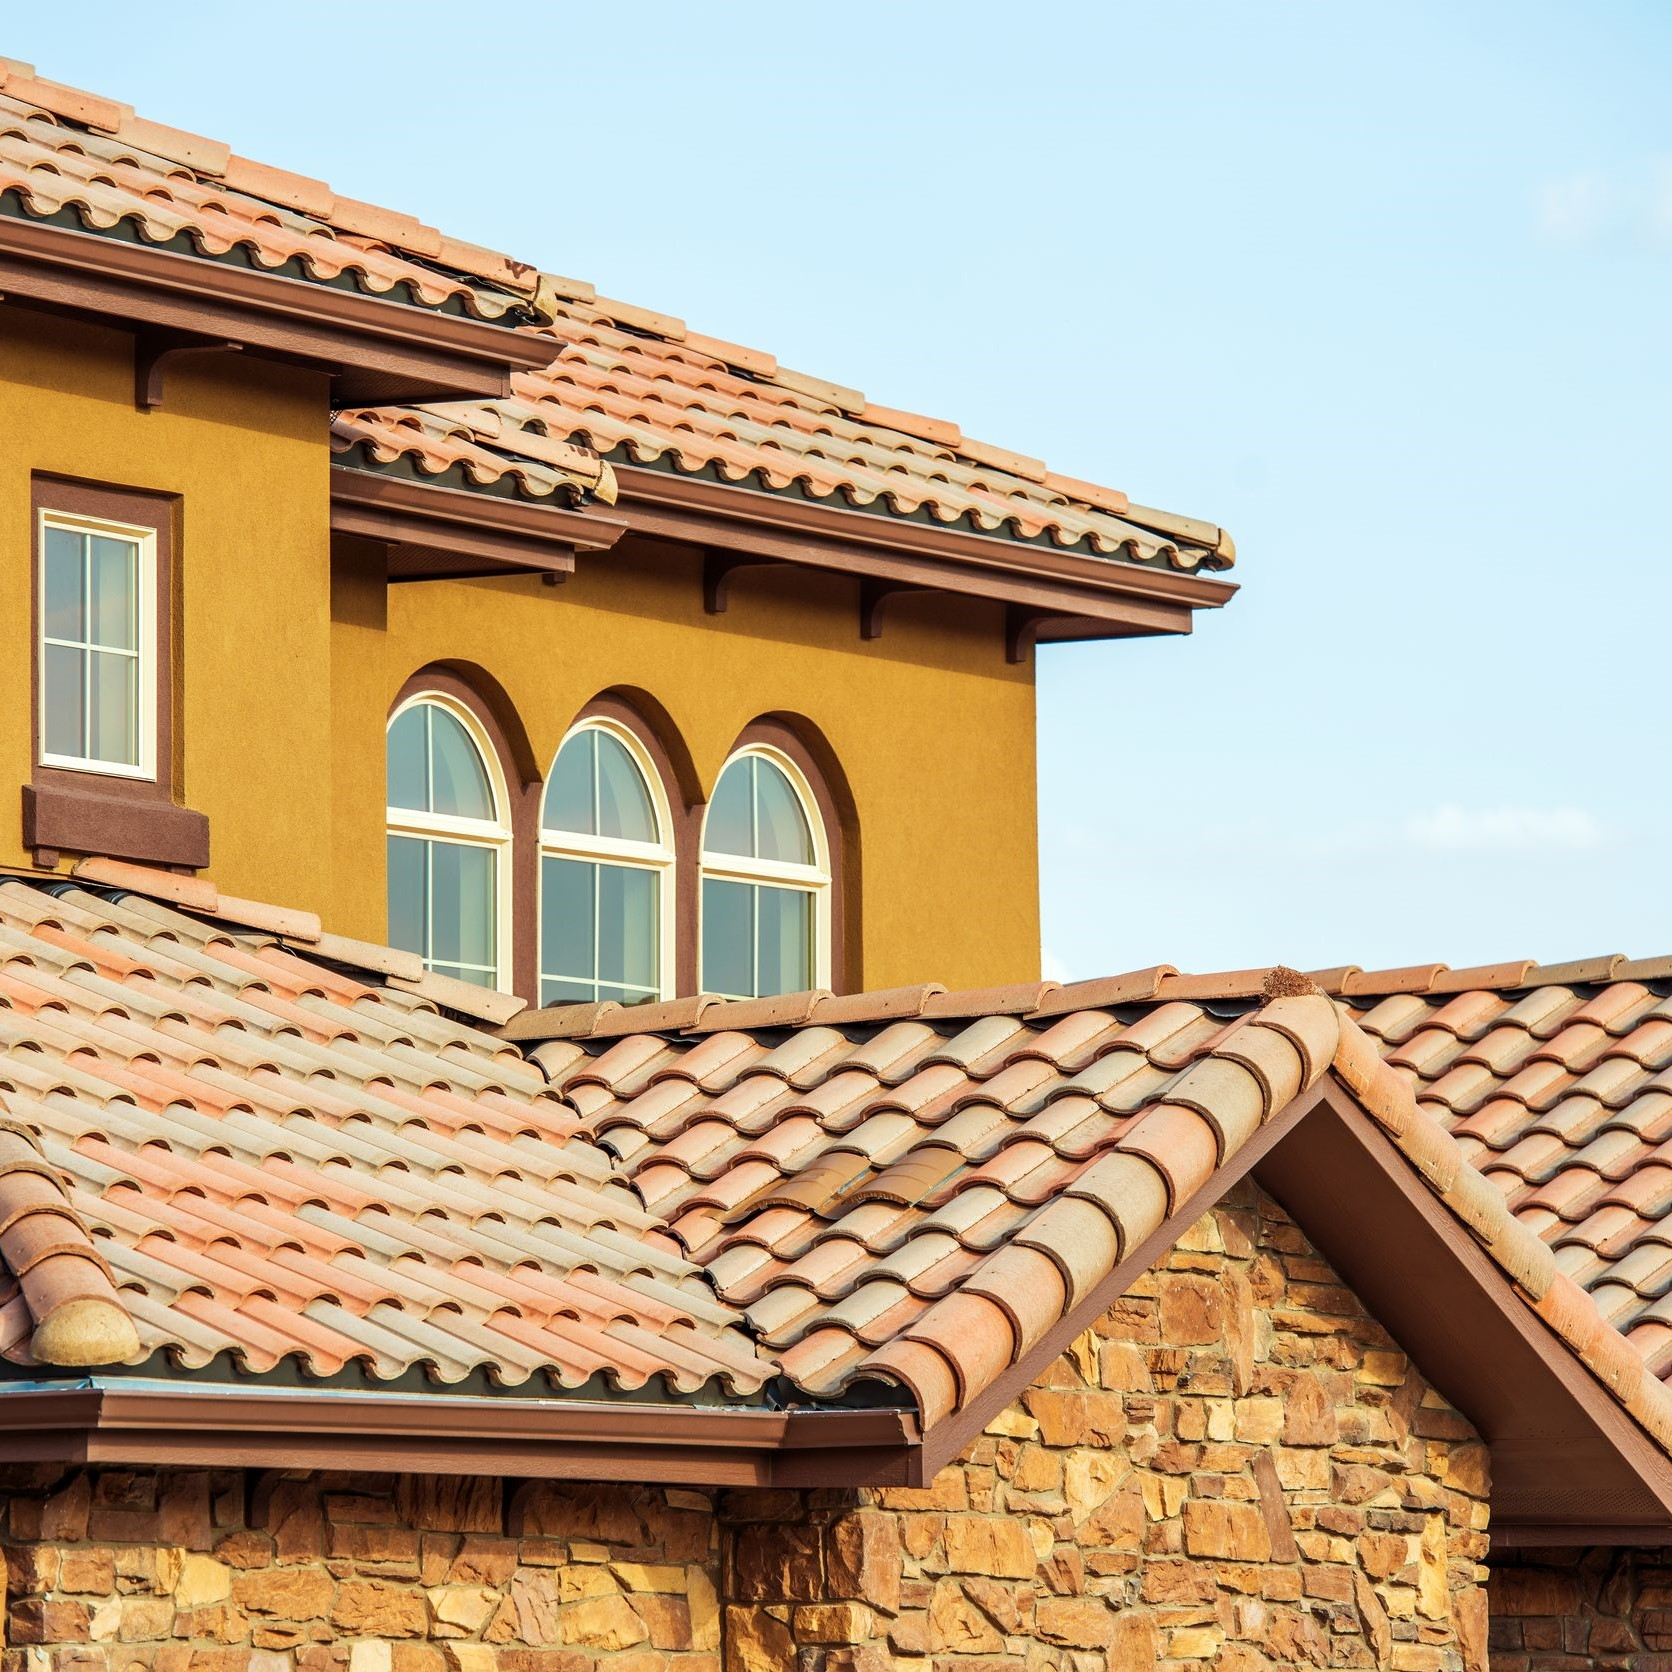 A home with a tile roof.